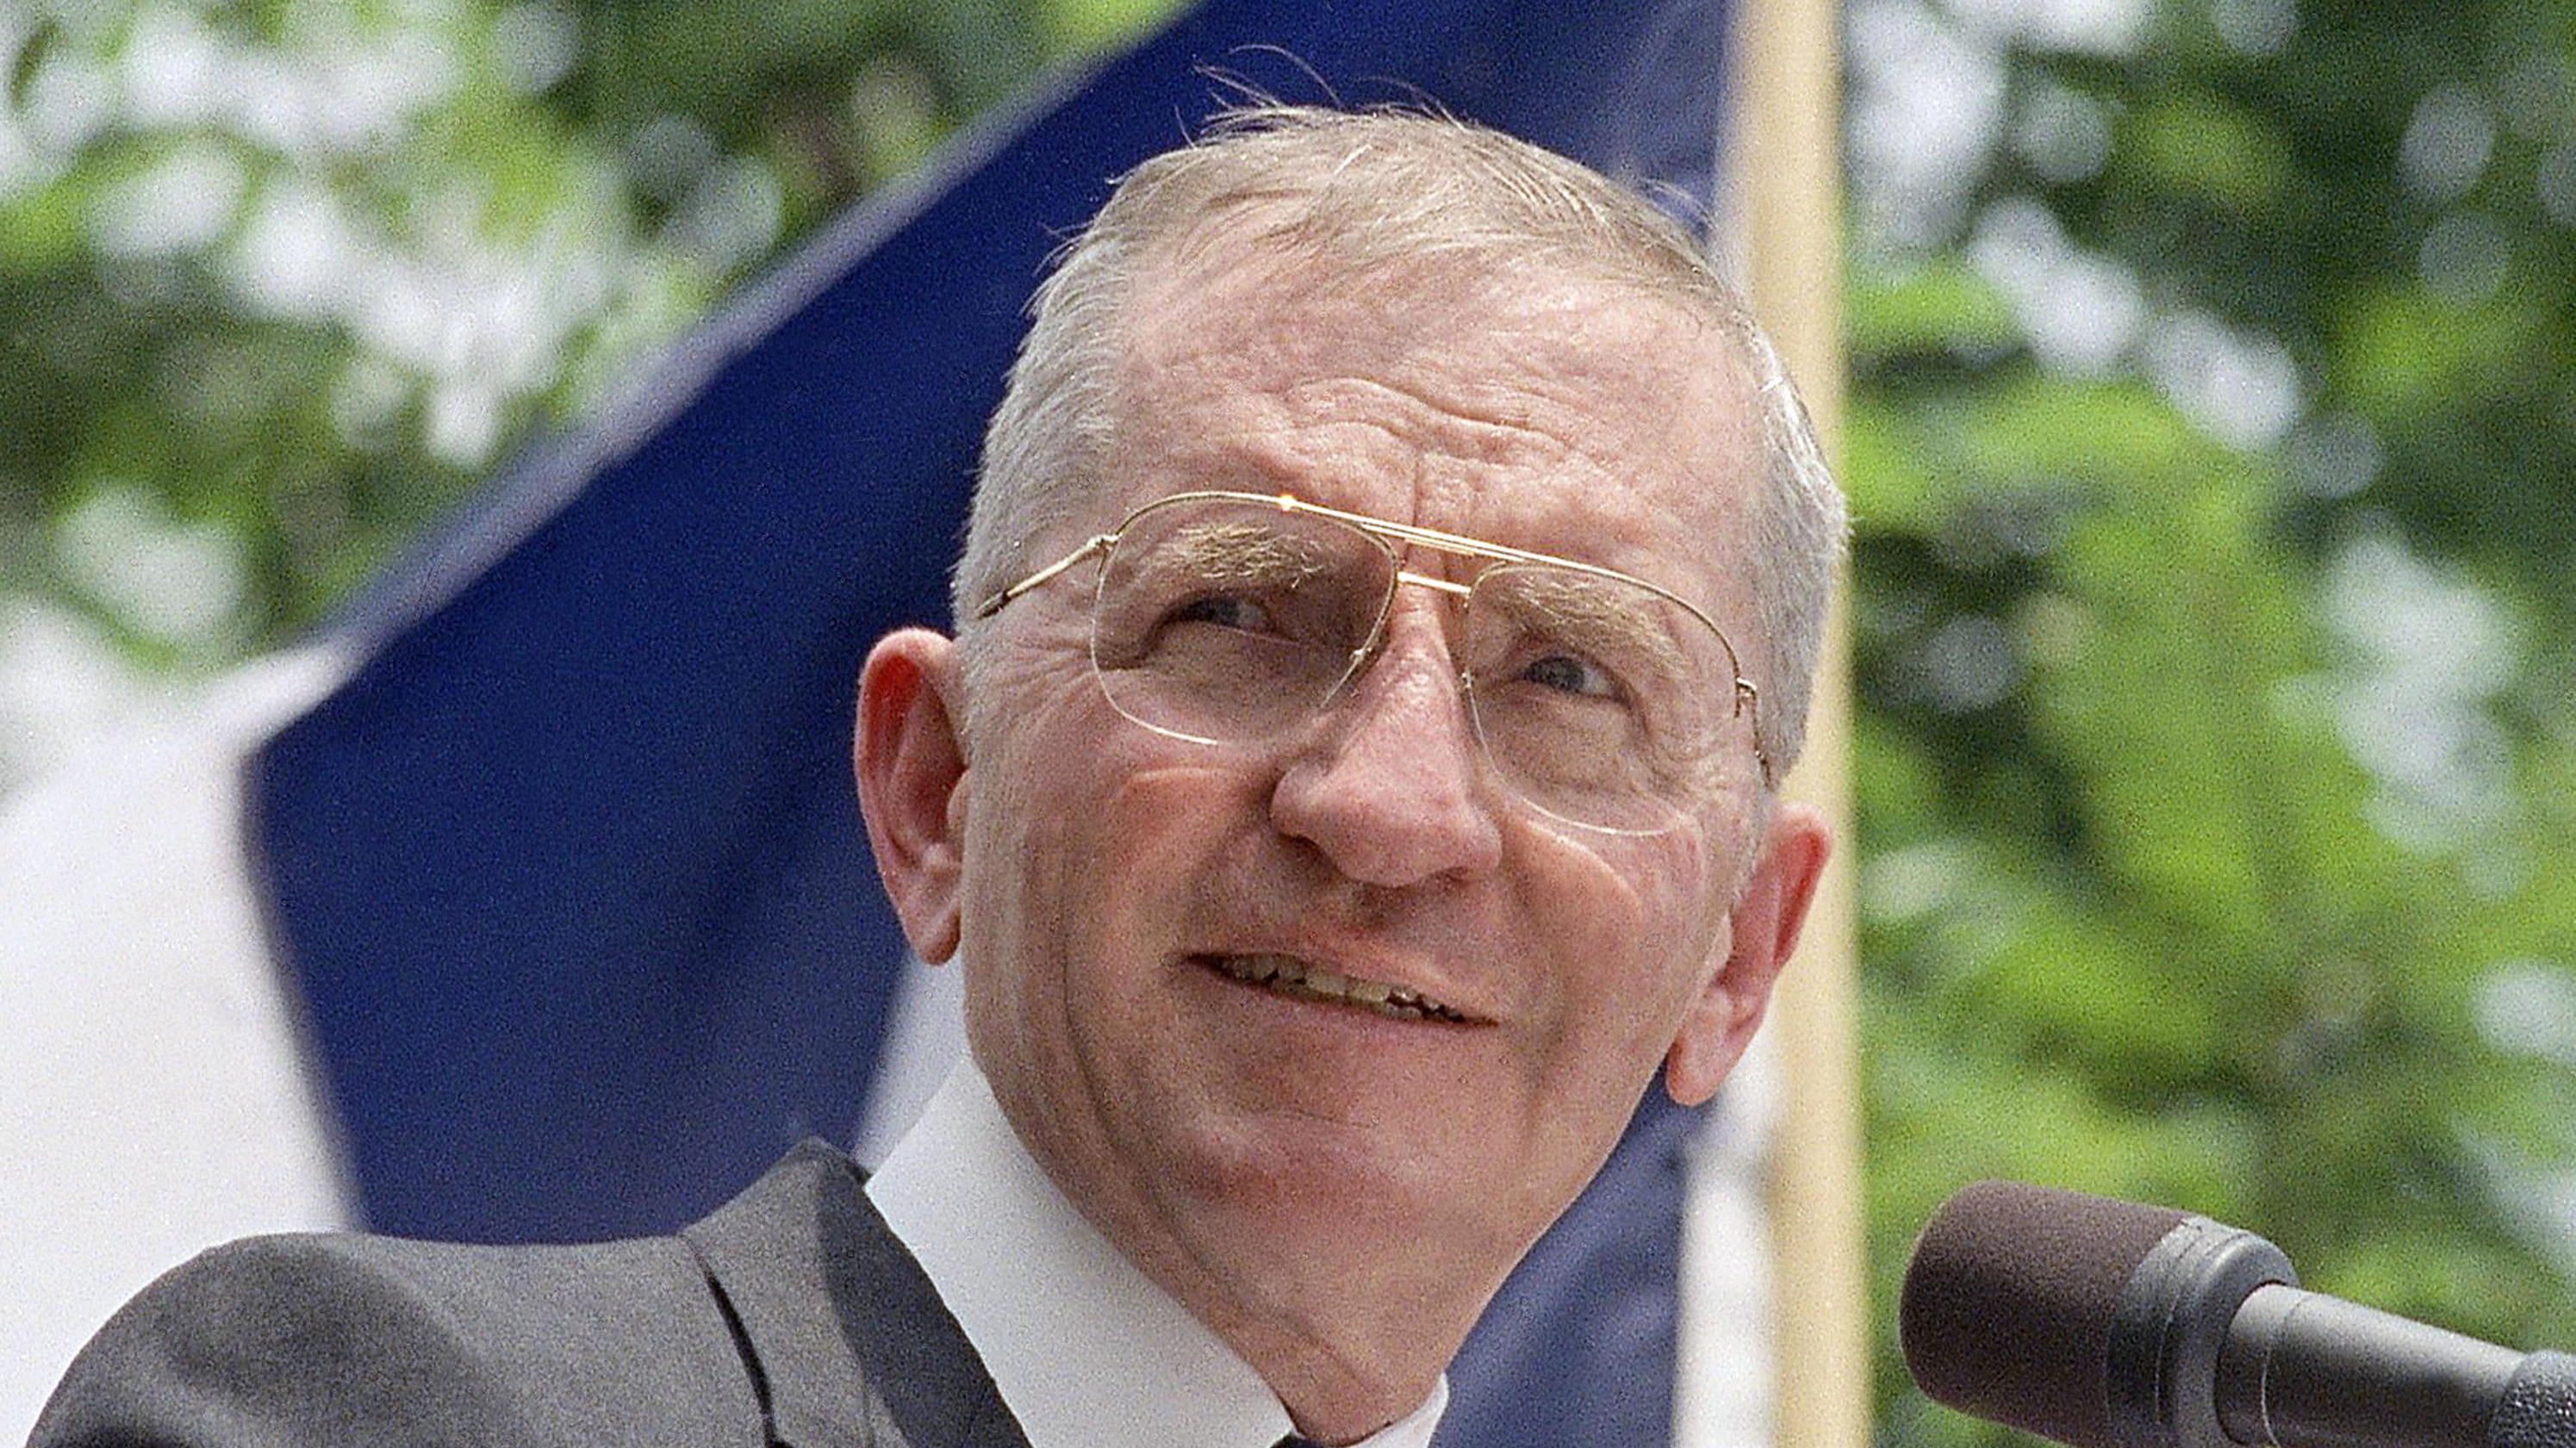 Ross Perot ran for president twice, in 1992 and 1996. He died on Tuesday in Dallas.